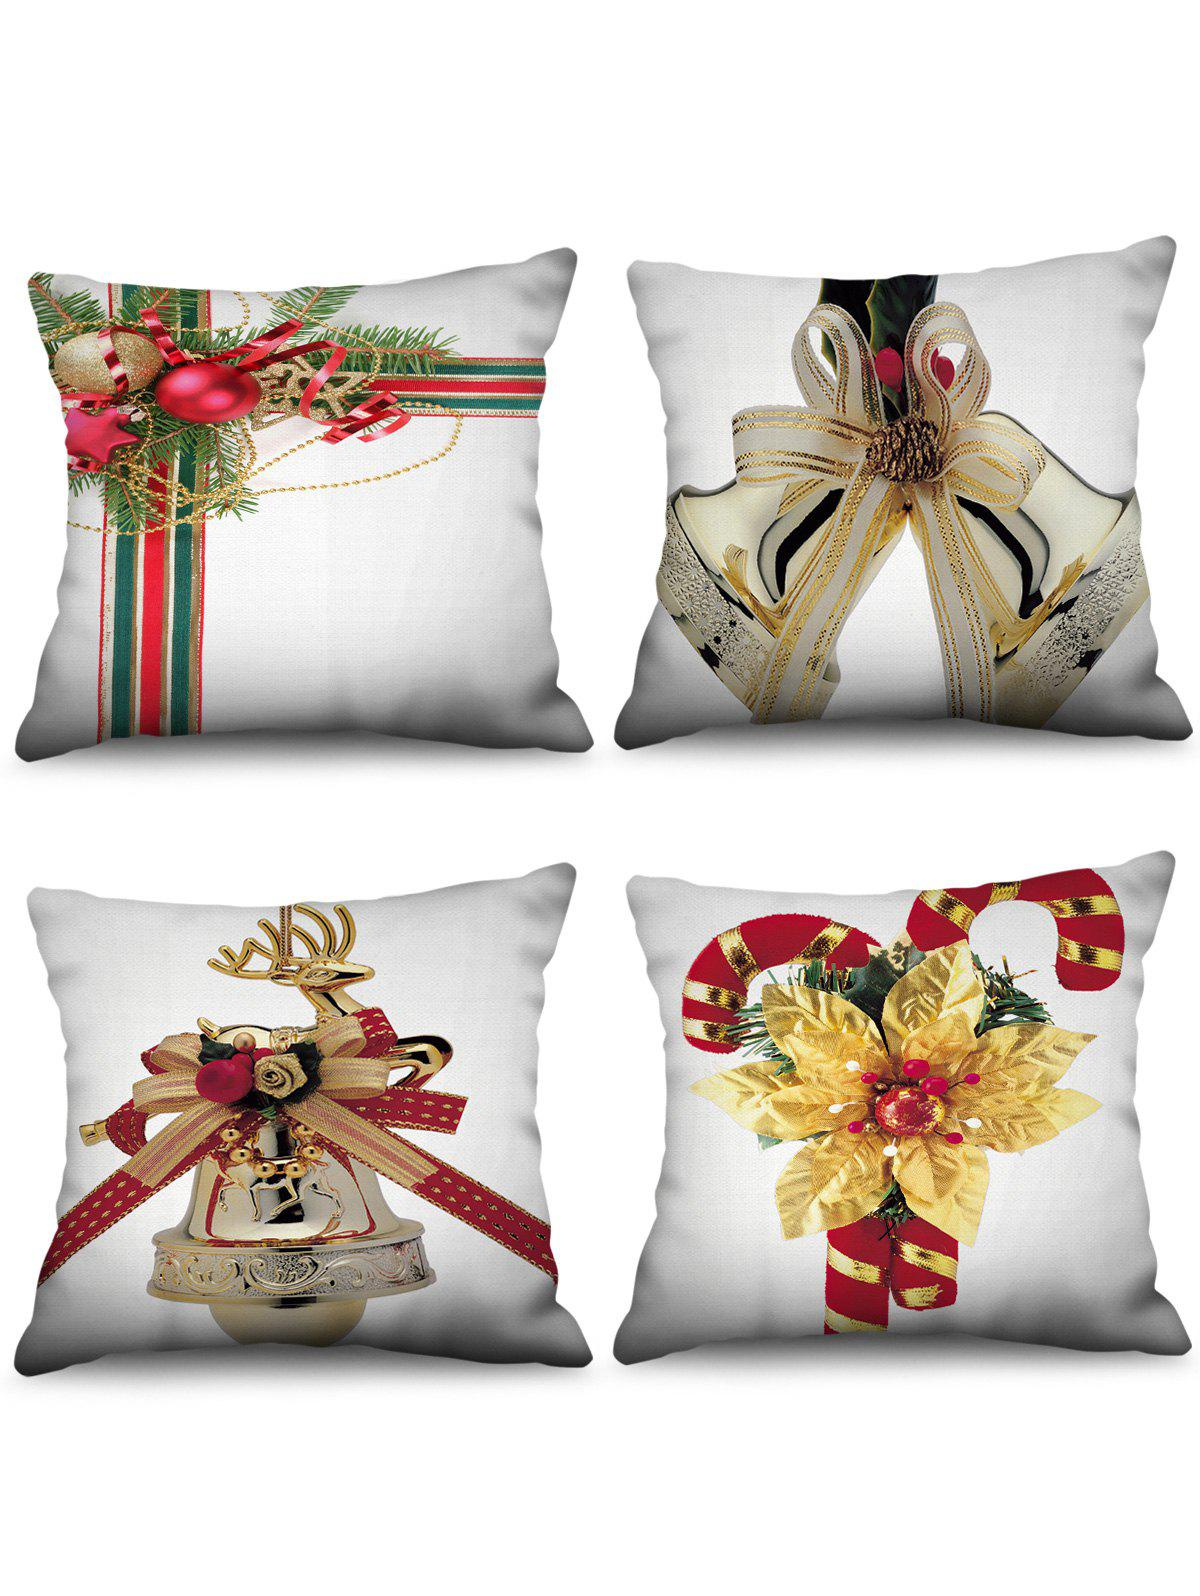 Online 4PCS Christmas Bell Candy Cane Printed Pillow Cover